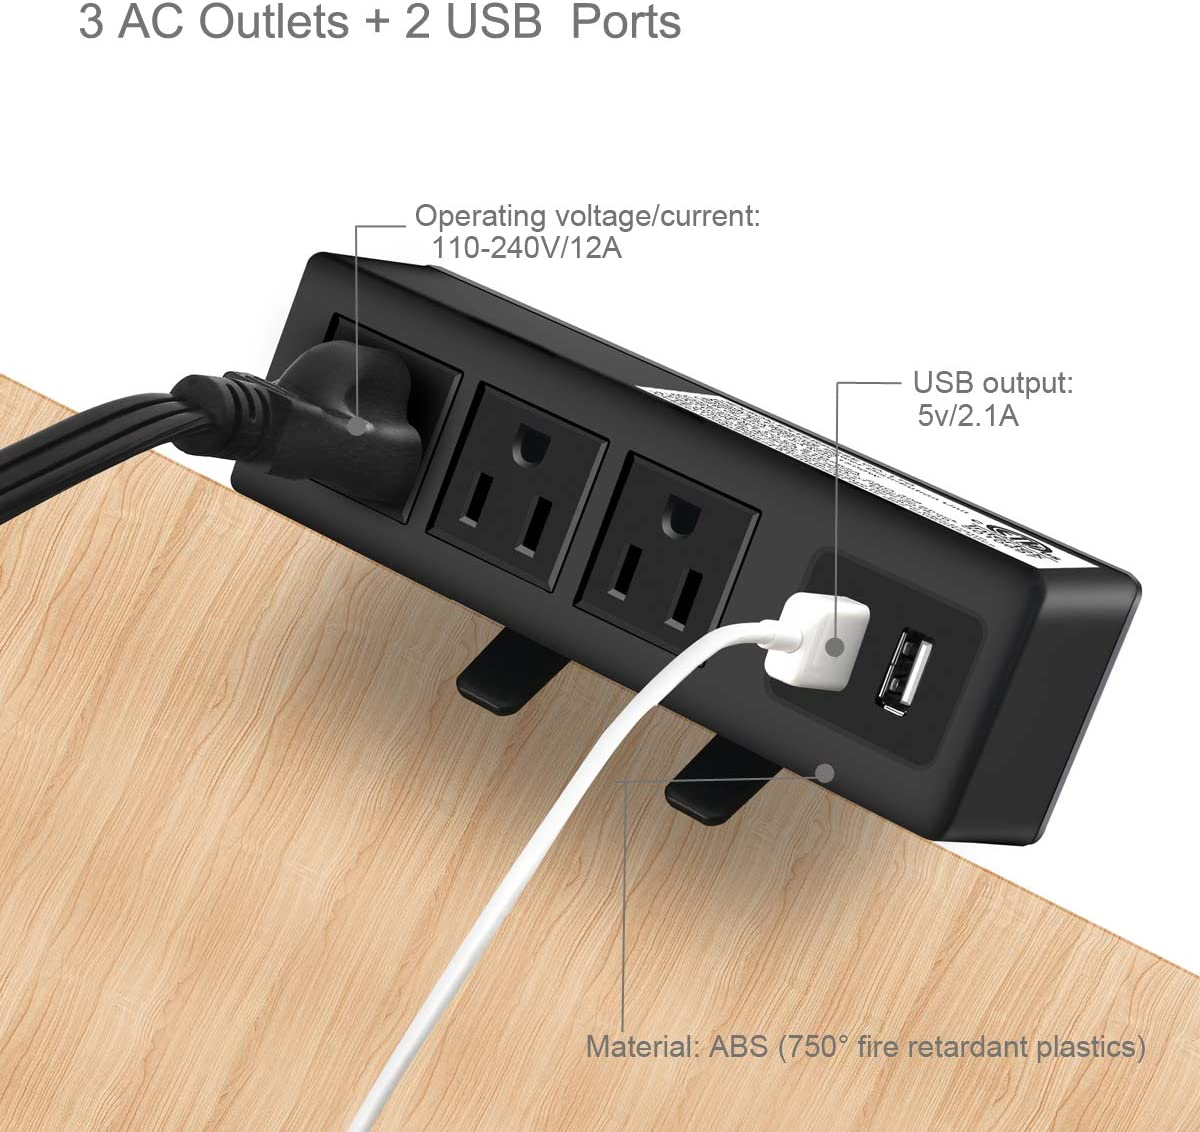 6.5 ft Extension Cord Connect 2 Plugs for Home Office Reading /¡/ Desktop Edge Power Strip Removable Clamp Power Outlet Socket with USB Port